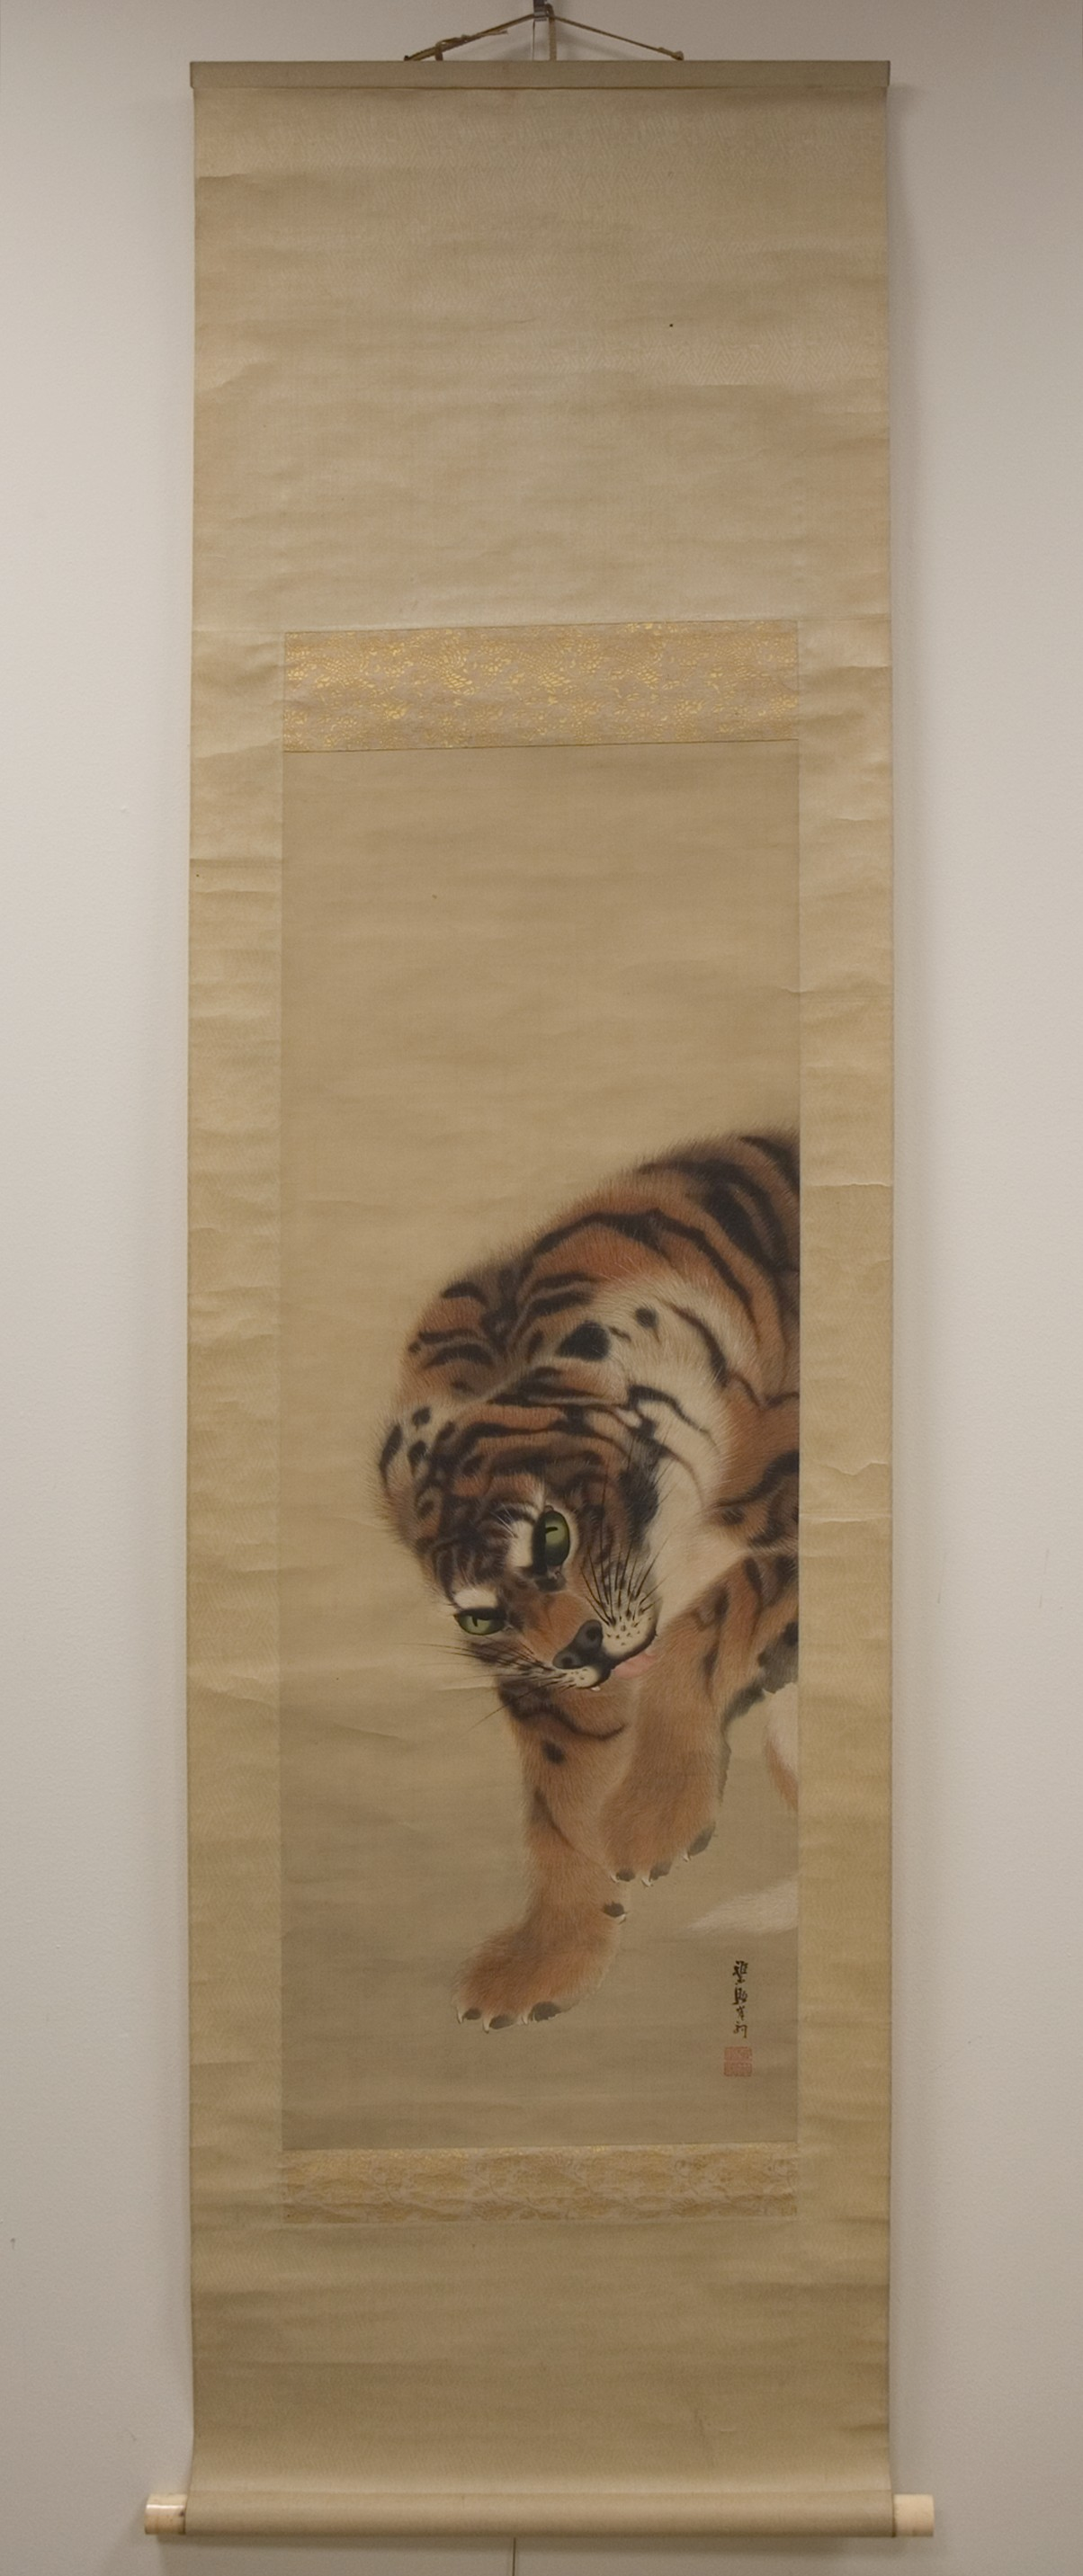 Animals Repro Prints on Canvas or Paper Tiger by Japanese Painter Kishi Ganku